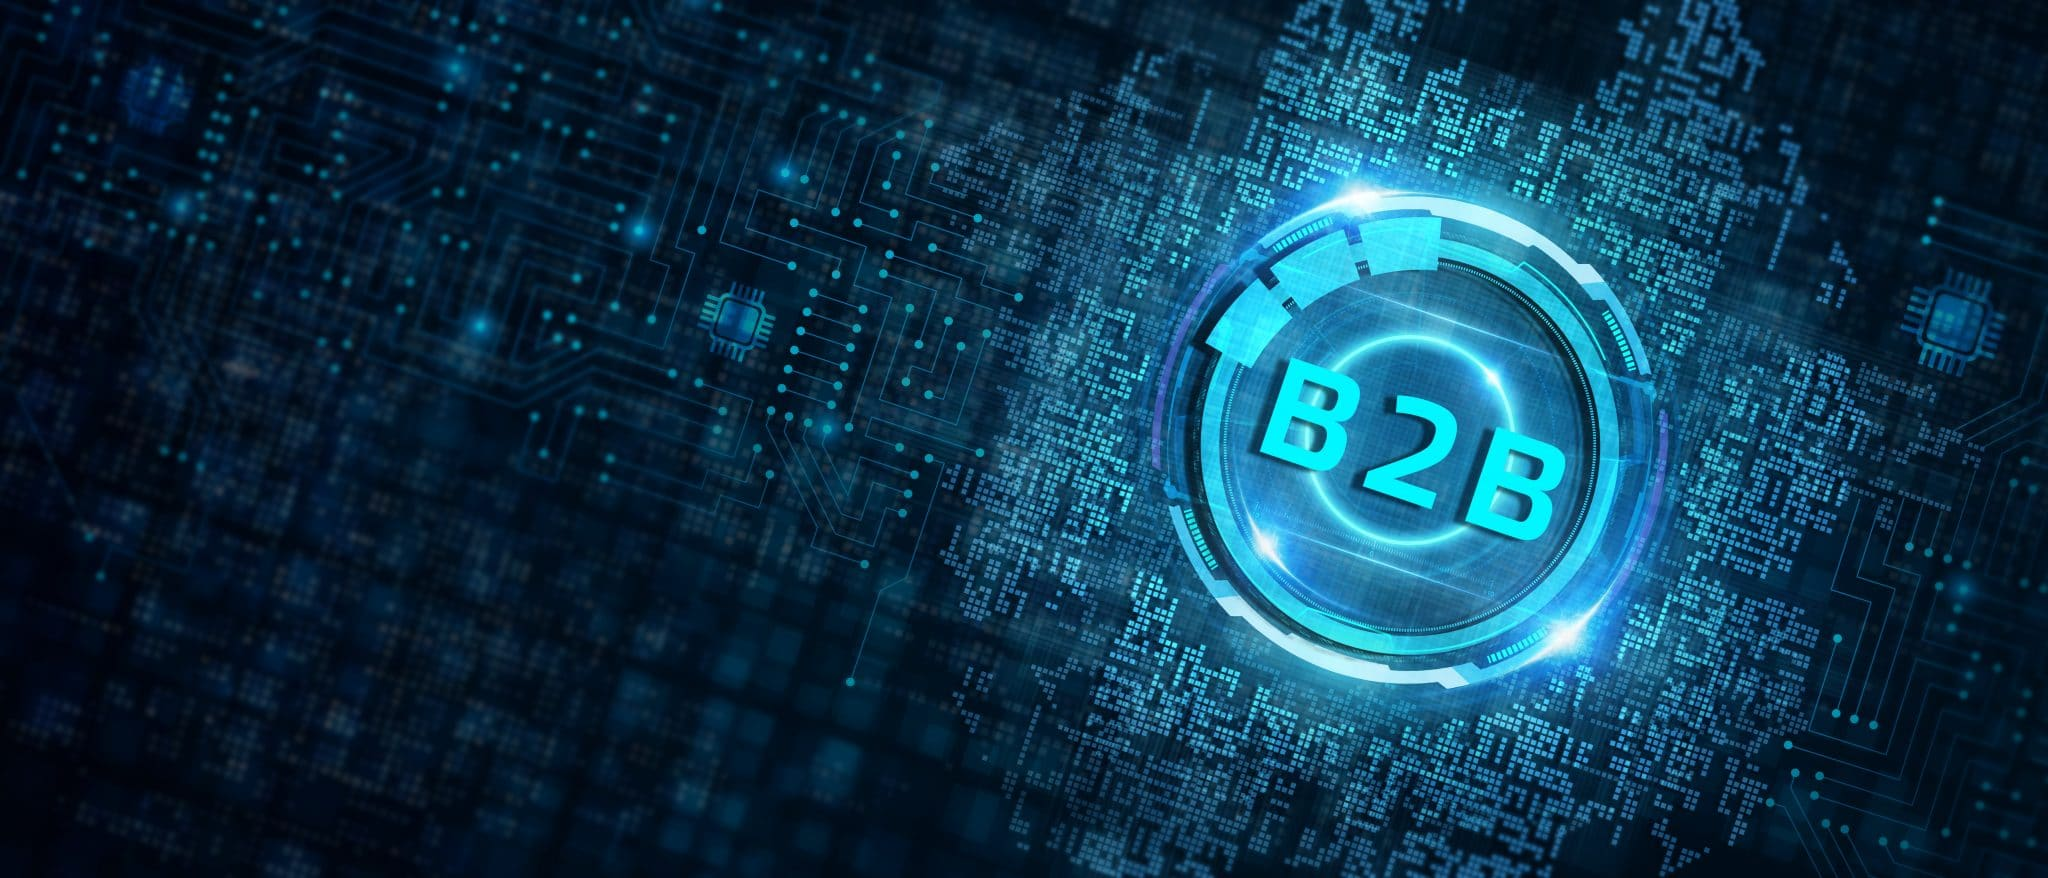 A Brief Guide to B2B Marketing, Part 1: What is B2B Marketing?